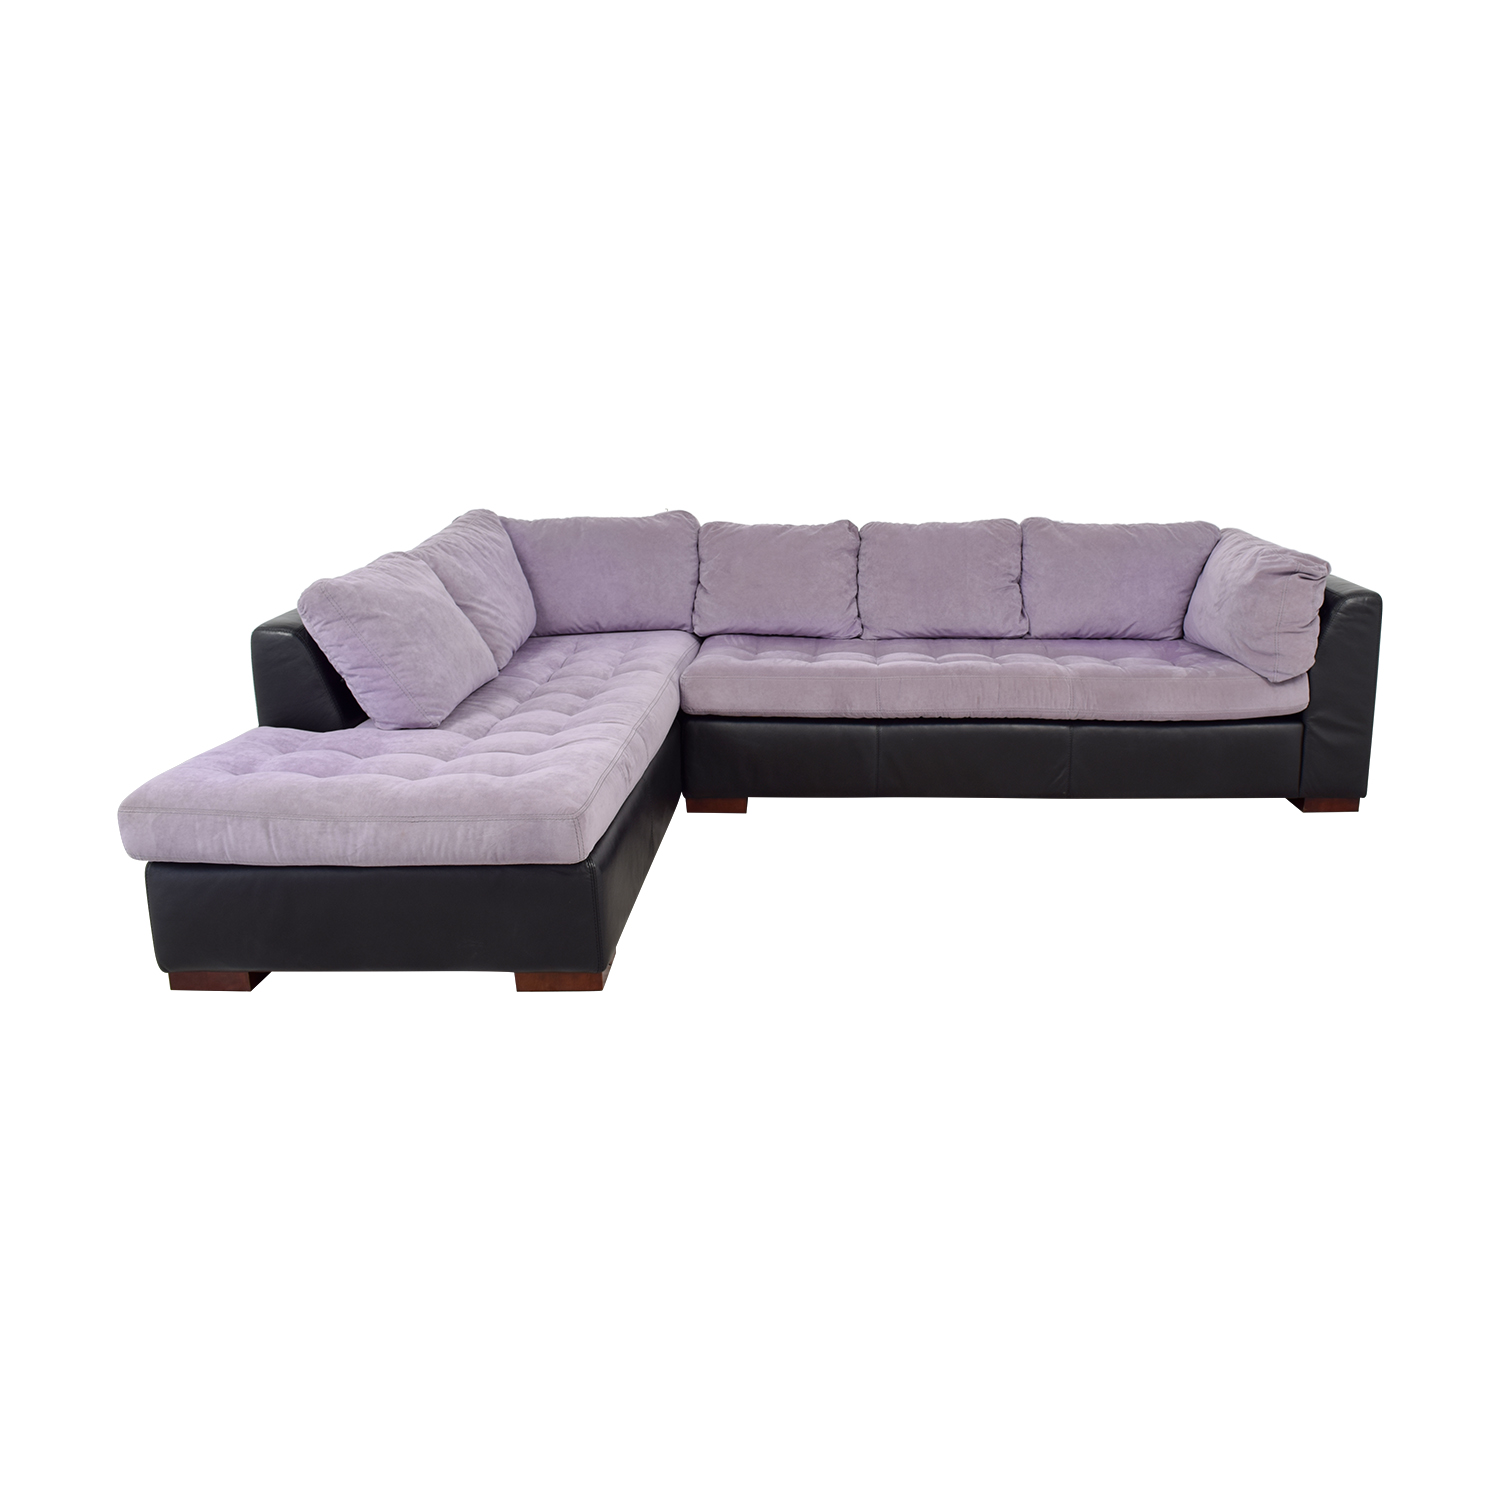 Buy American Leather Sectional Sofa American Leather ...